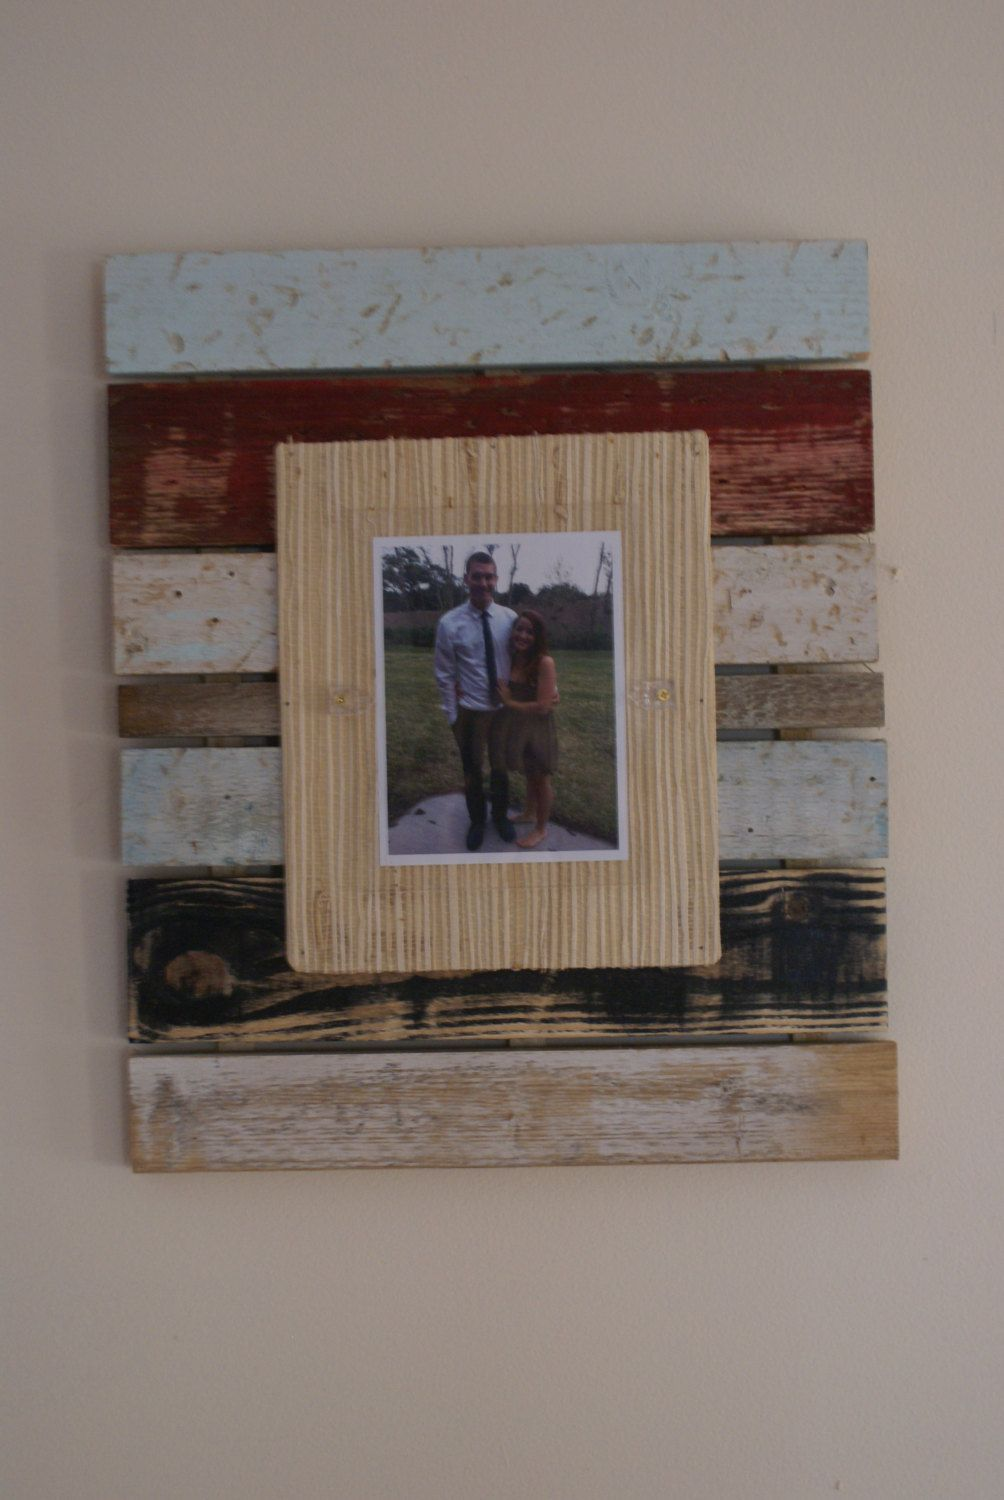 Distressed wood frame, reclaimed wood frame, Rustic picture frame, FREE SHIPPING wood picture frame, Reclaimed wood look frame, Rustic by Adamzoriginals on Etsy